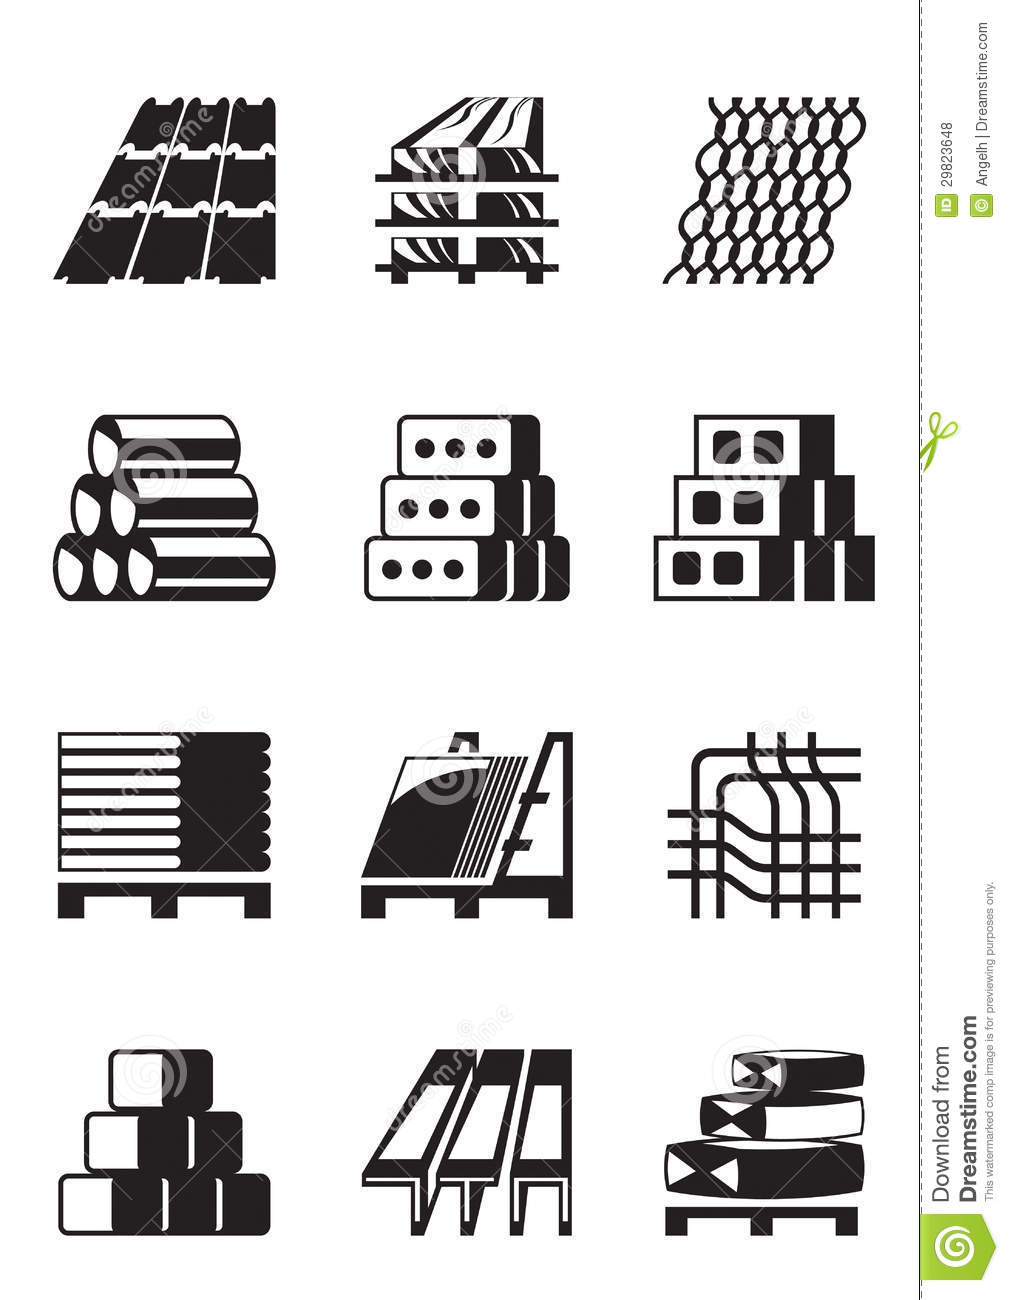 Building and construction materials stock vector image for Waste material images